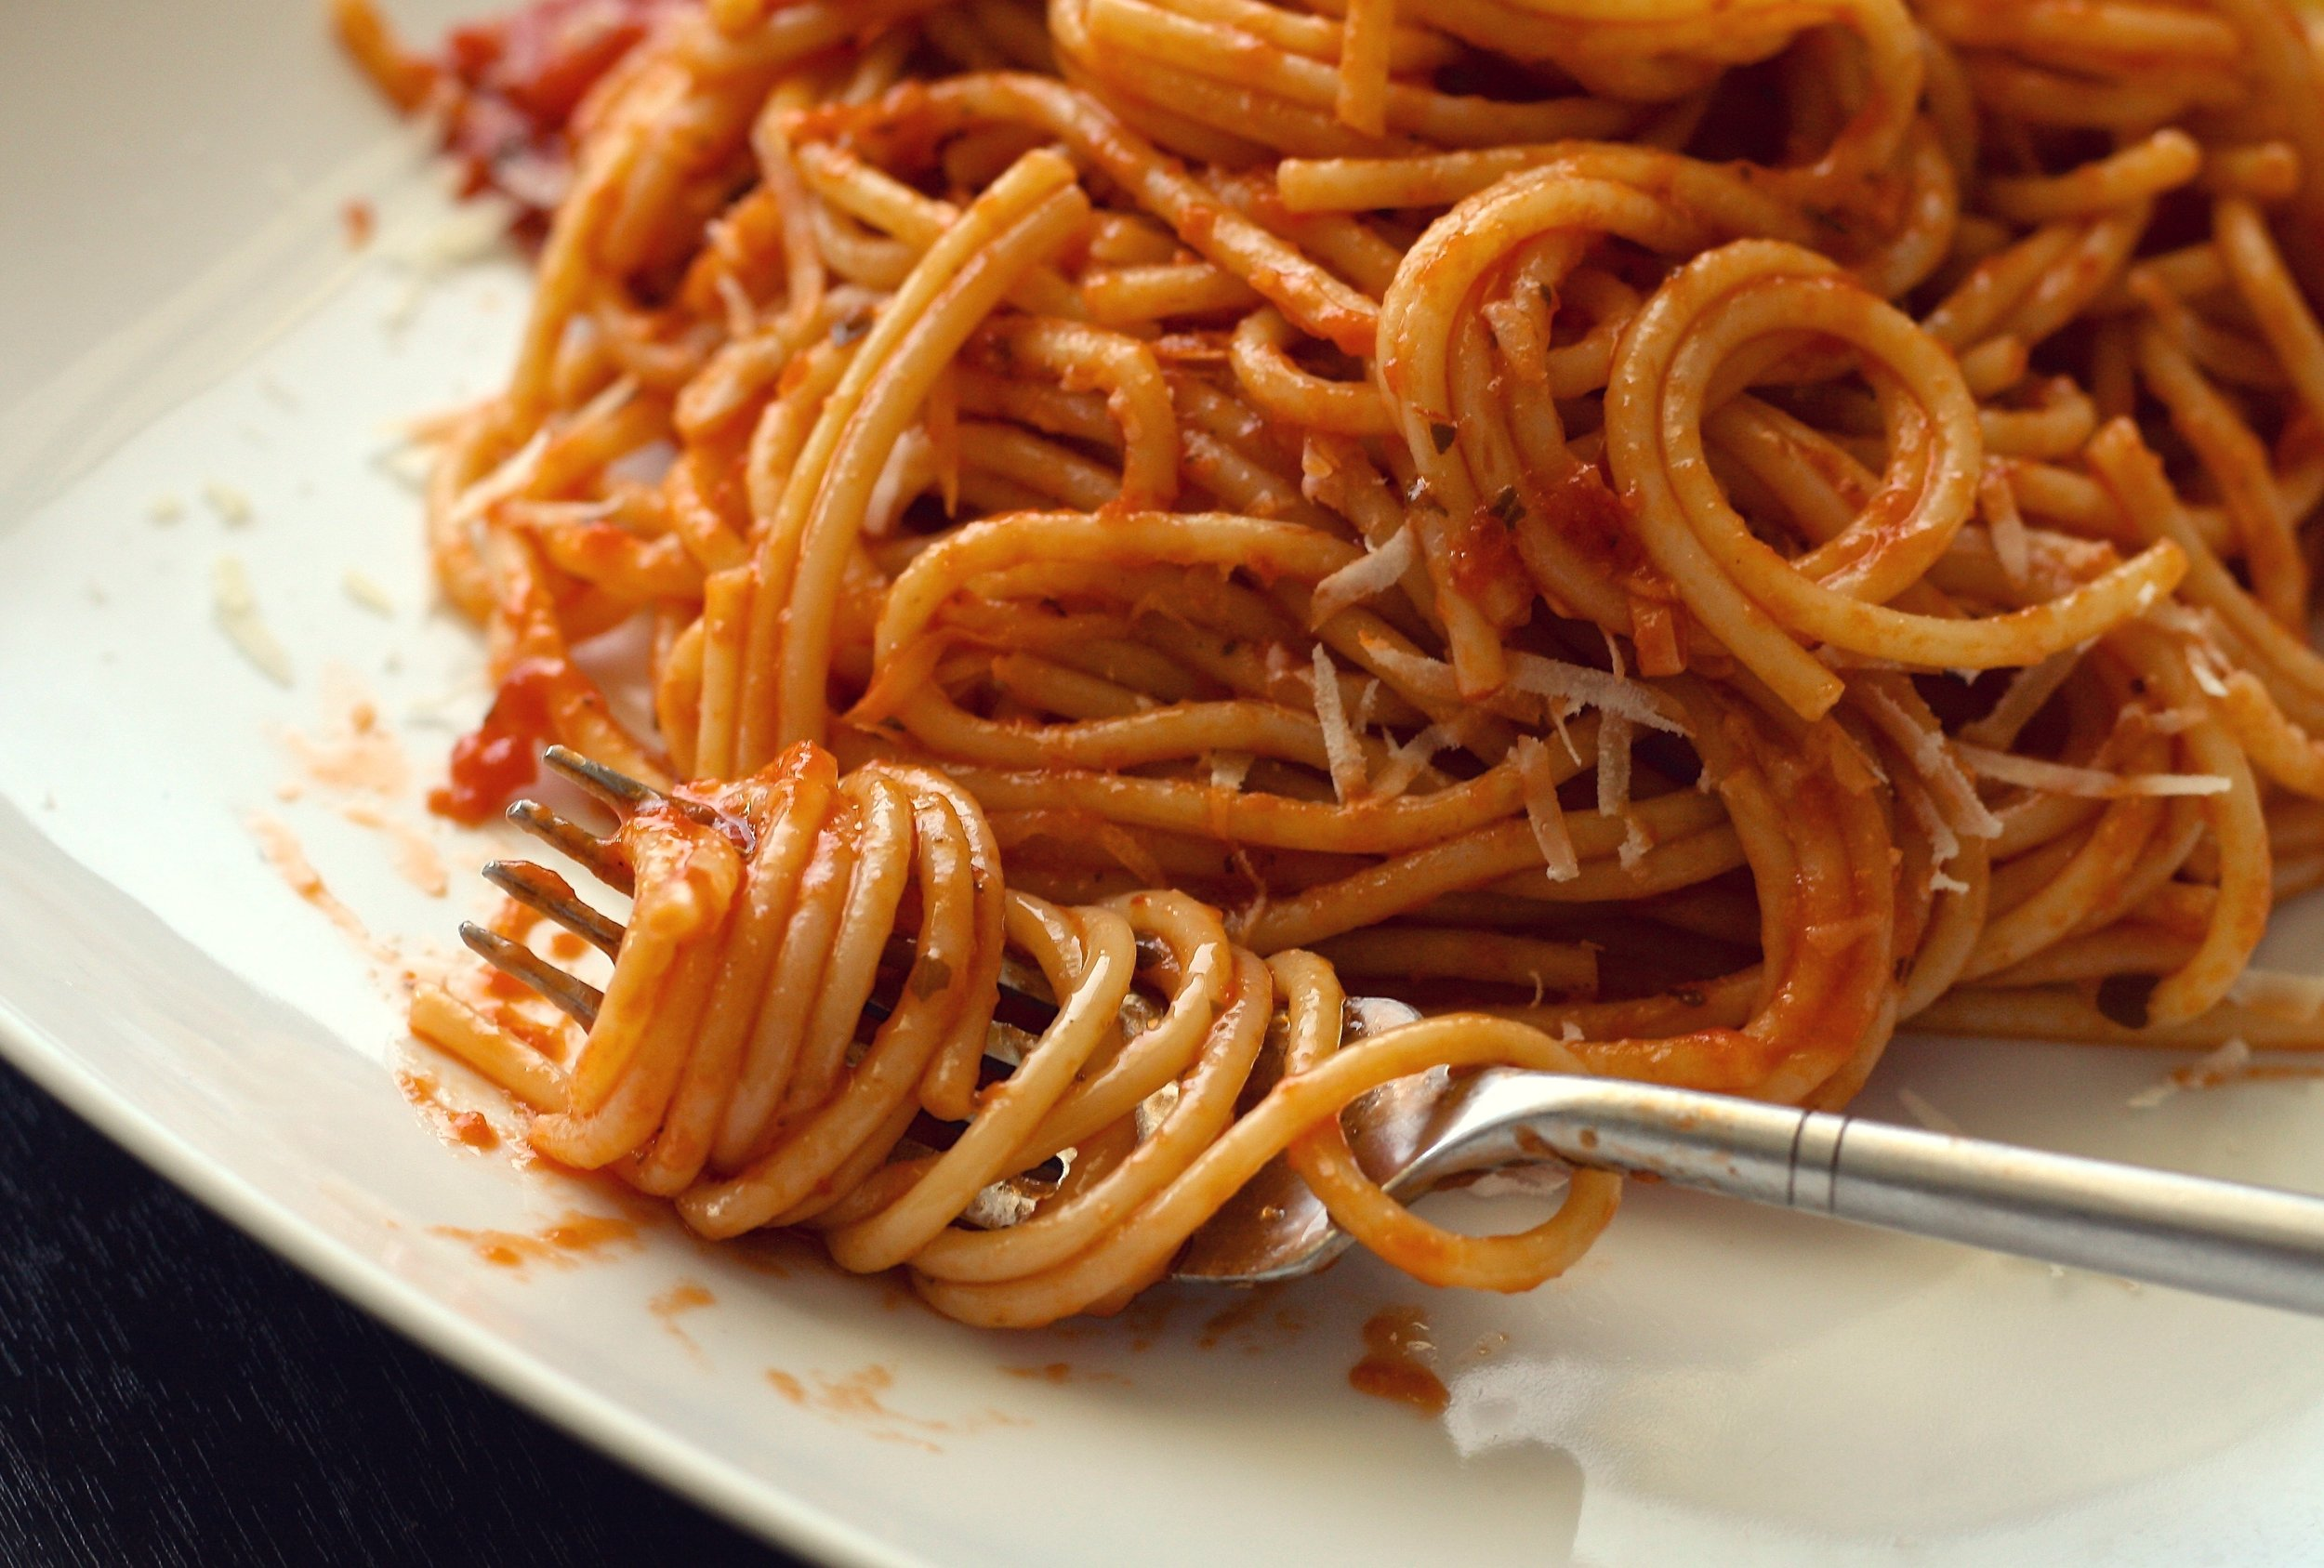 Pasta-Spaghetti-on-folk.jpg